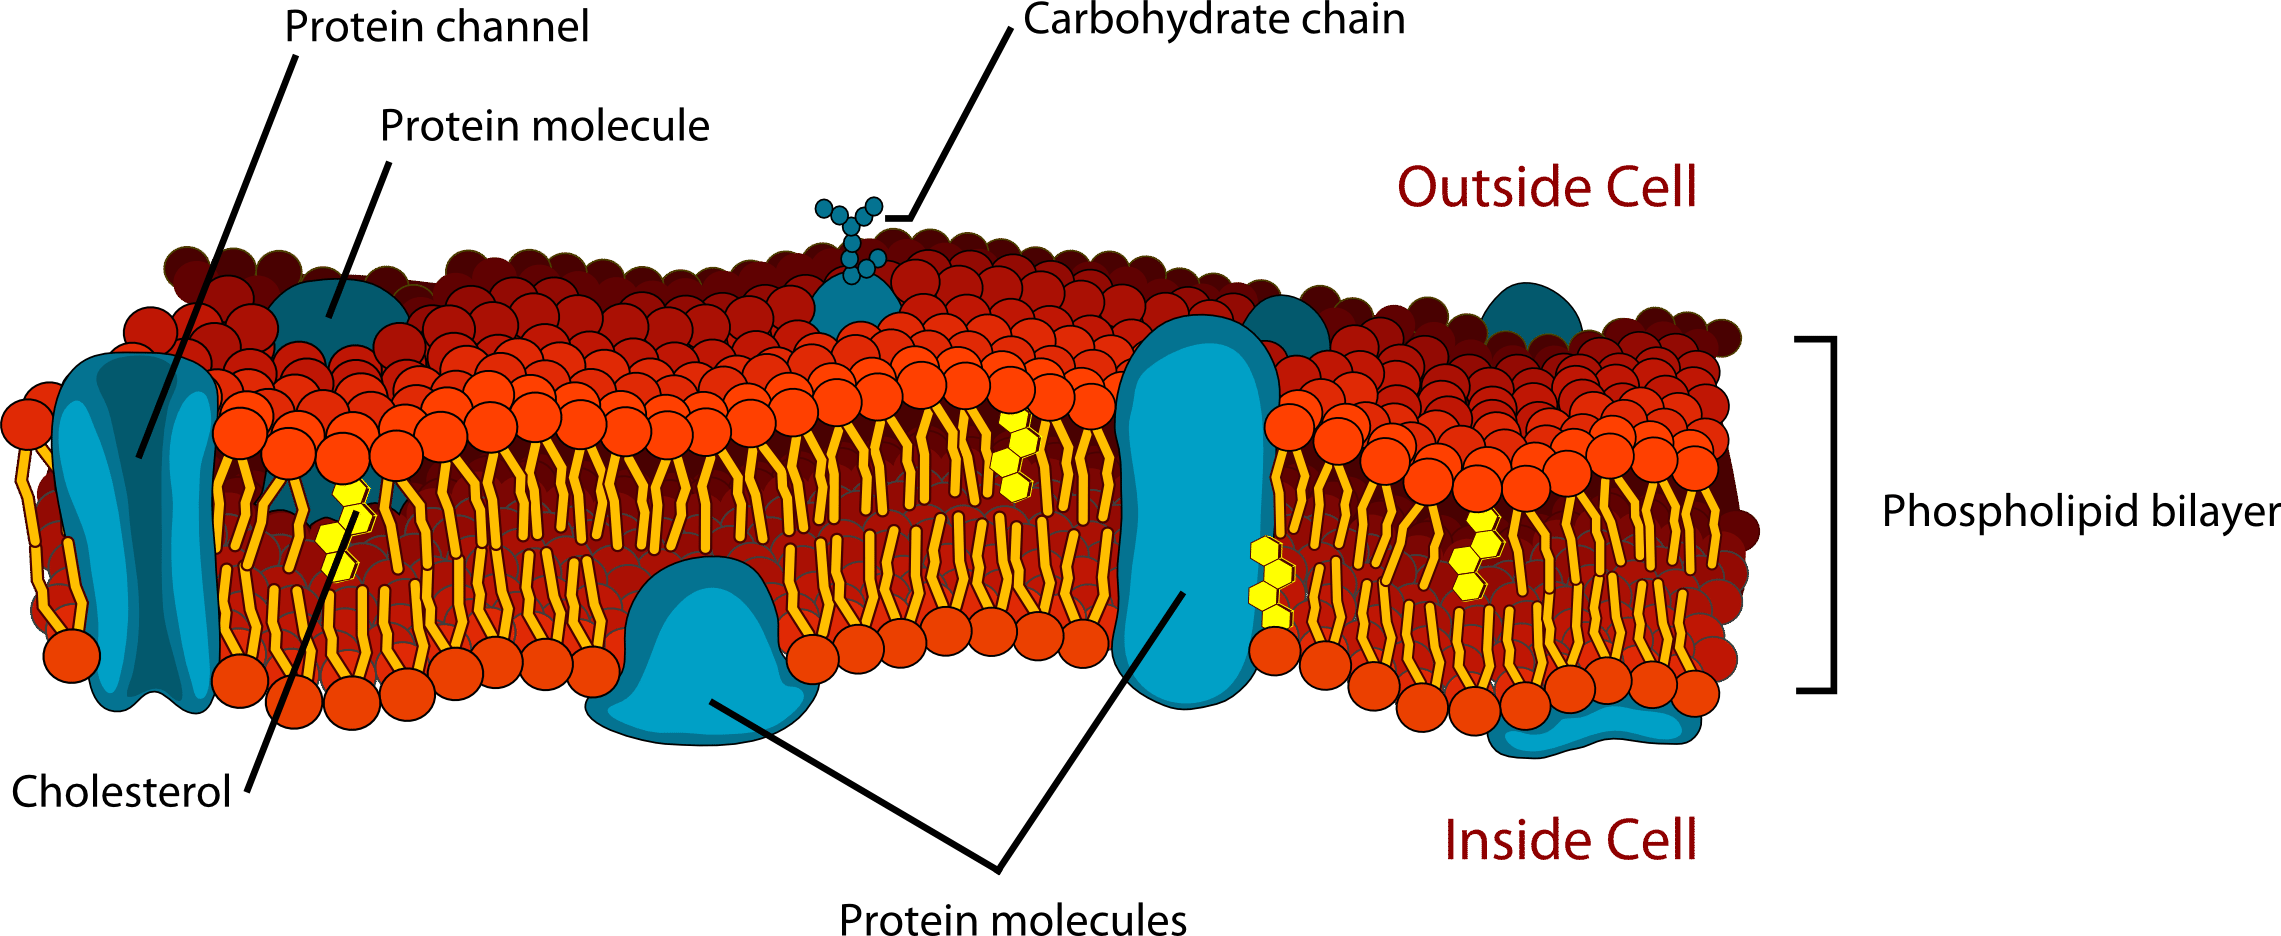 Structure of a phospholipid cell membrane